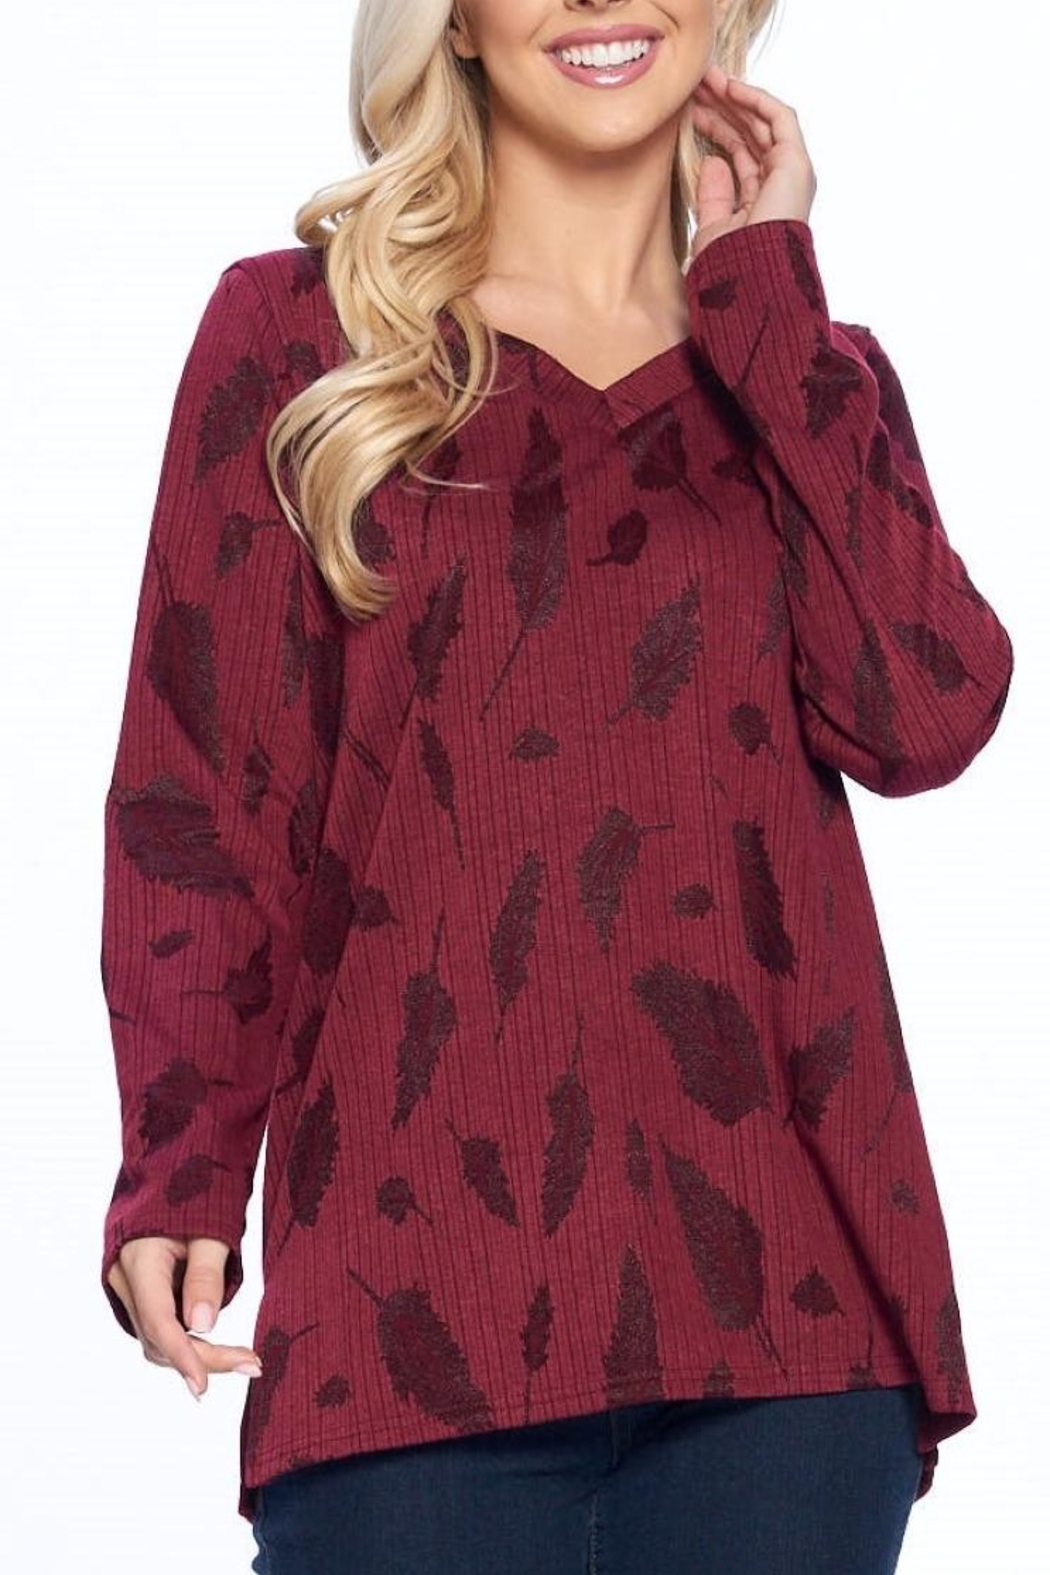 Aryeh Wine V-Neck Knit Top - Front Full Image